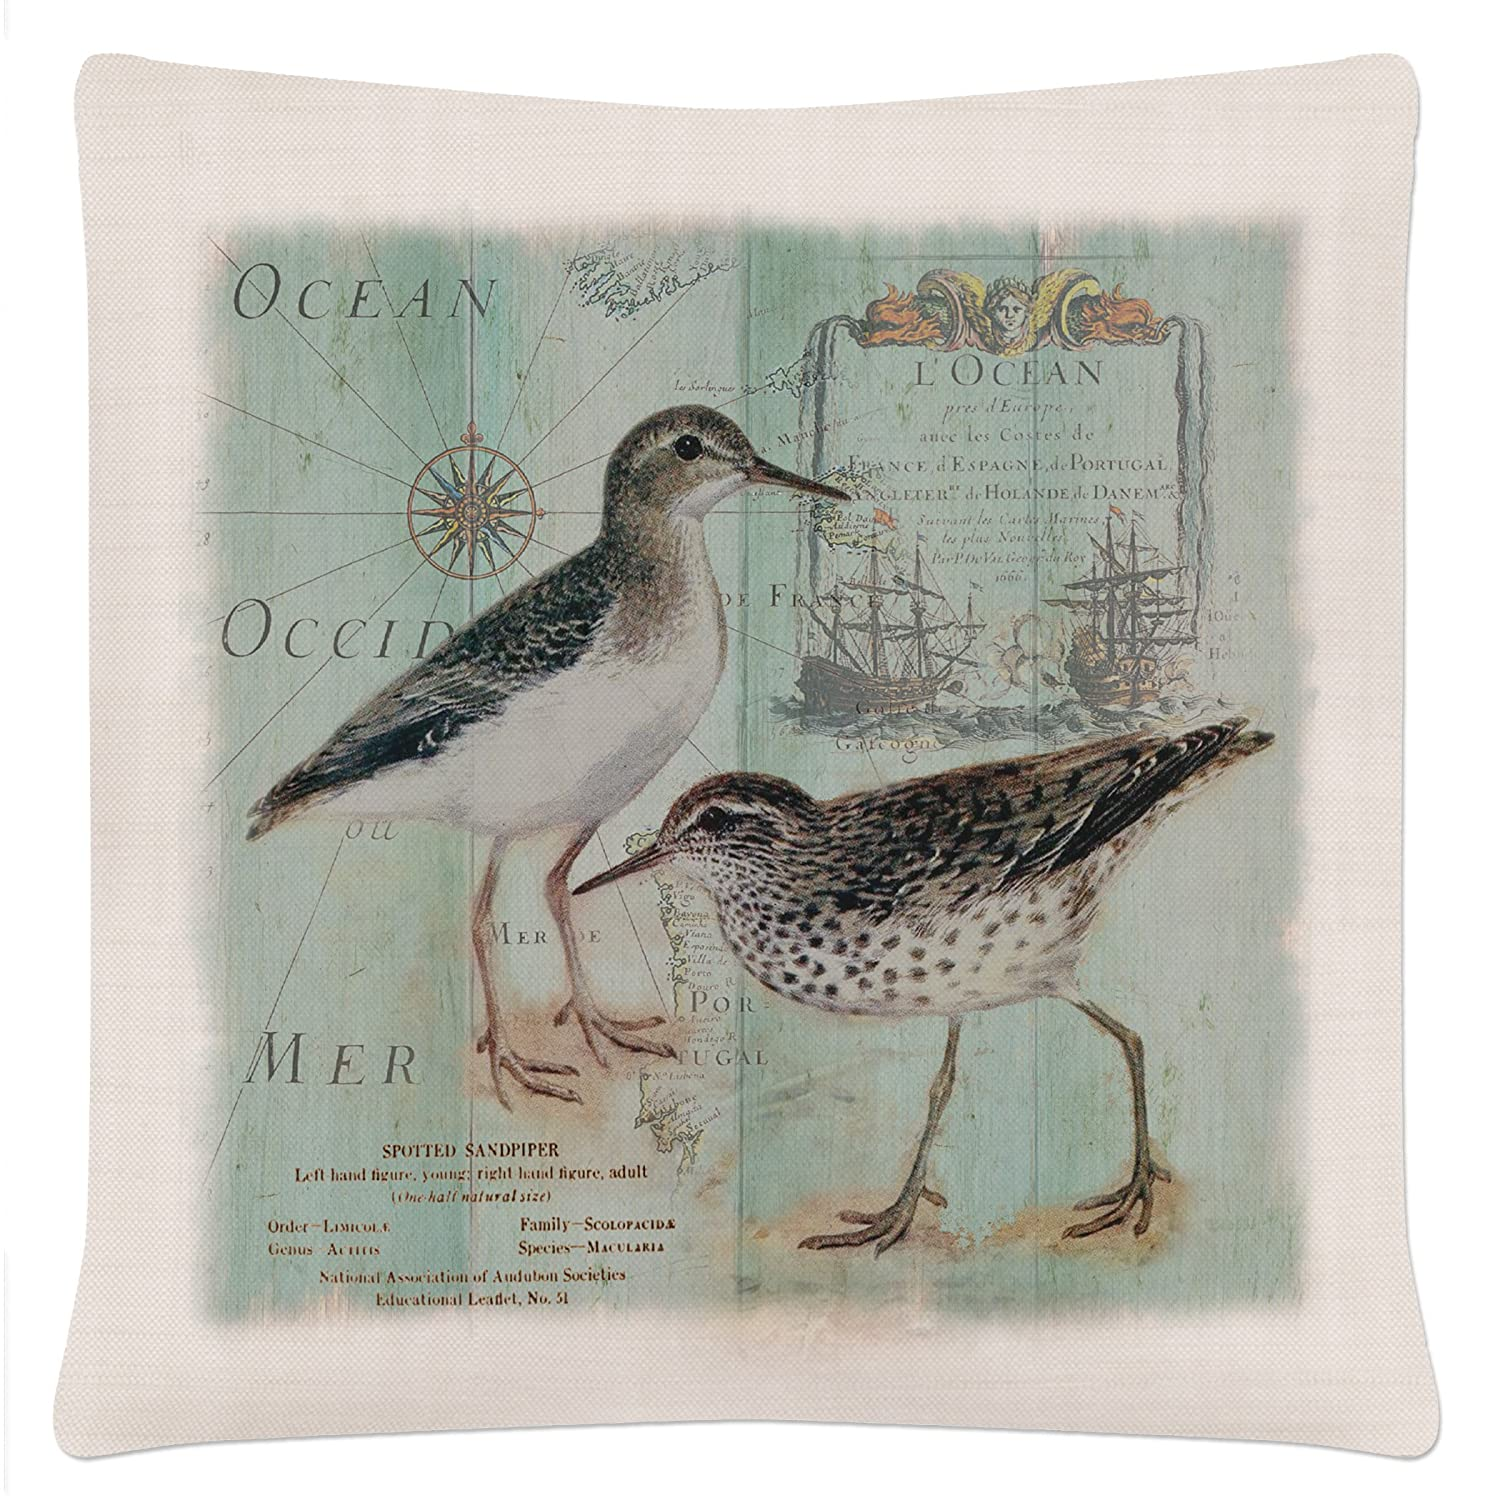 Heritage Lace Shorebirds Coastal Collage 18' X 18' Oyster Pillow